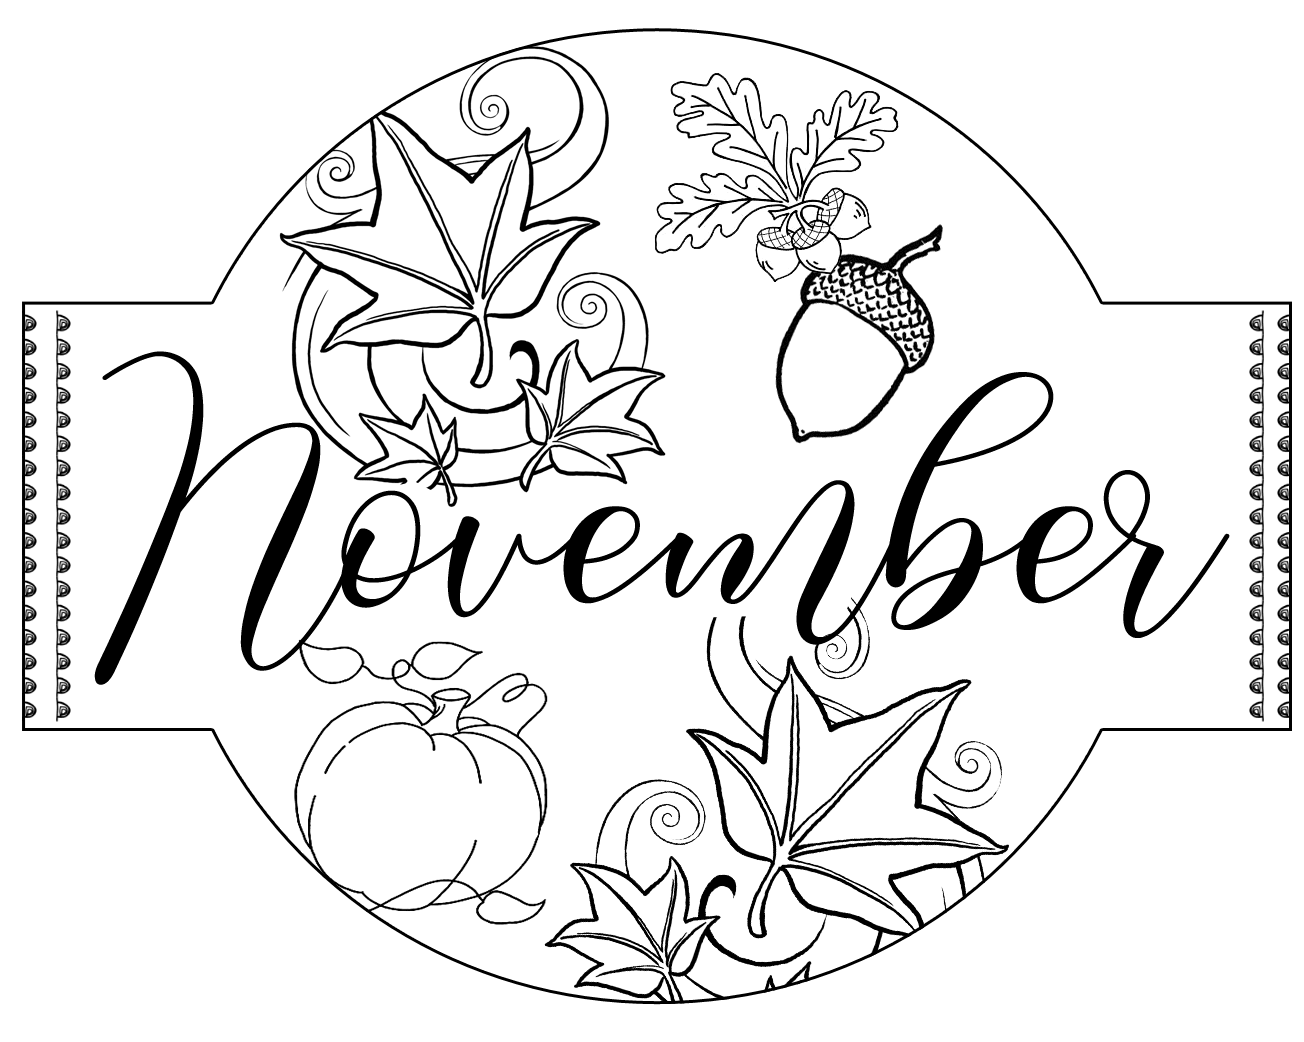 November Coloring Pages Pusheen coloring pages, Heart